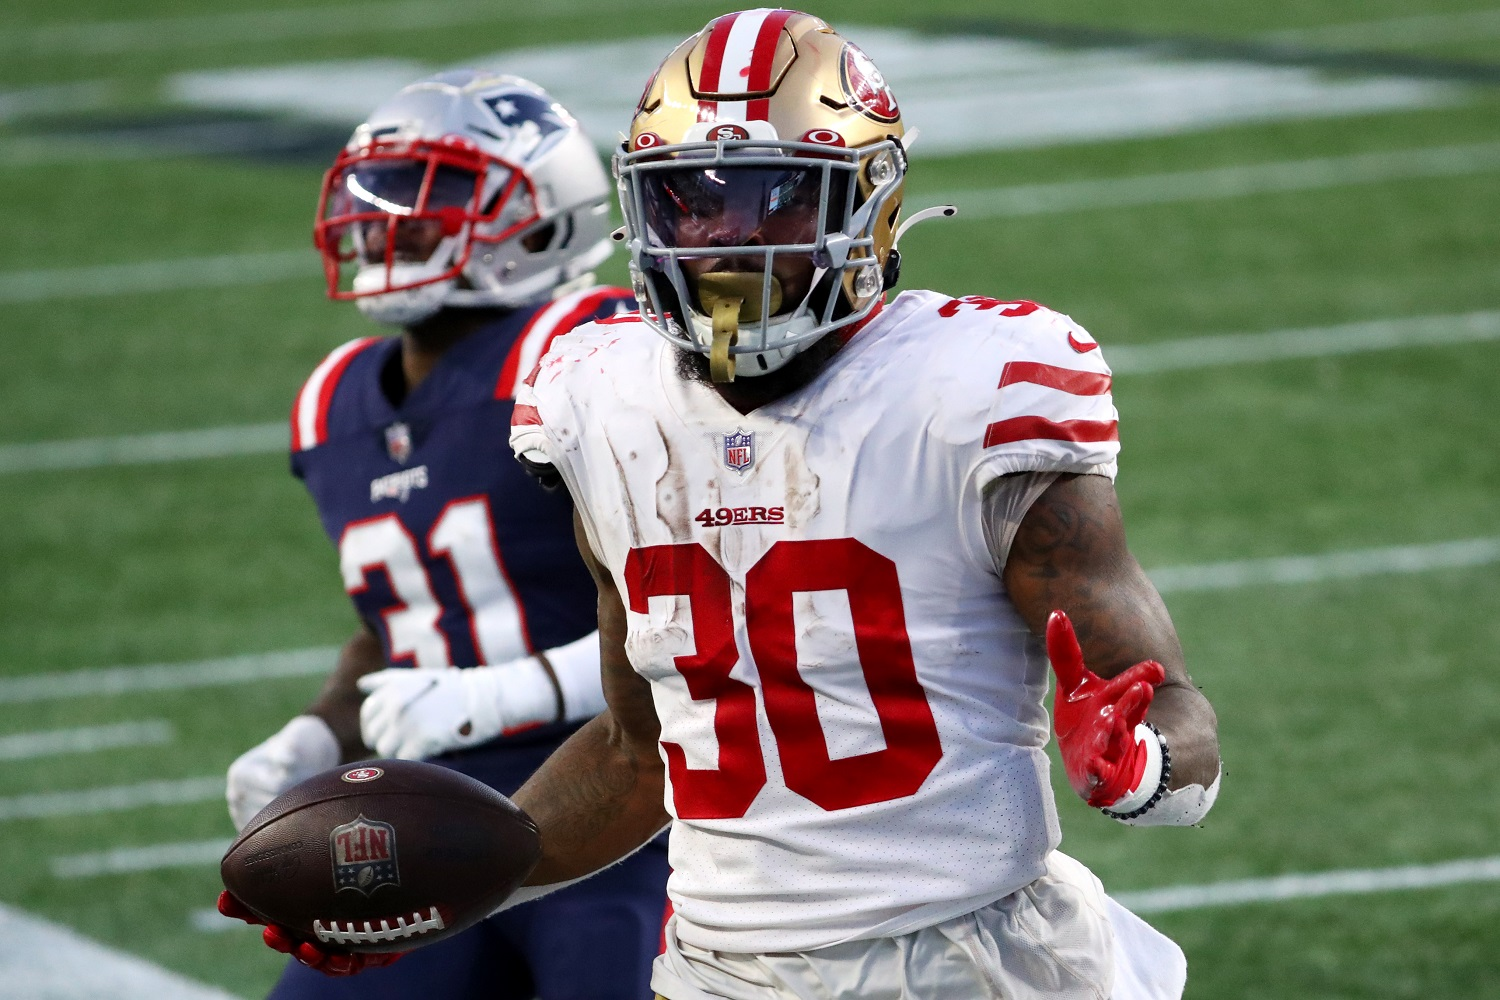 Jeff Wilson Jr. scored 10 touchdowns in his third NFL season with the NFL's San Francisco 49ers. | Maddie Meyer/Getty Images)